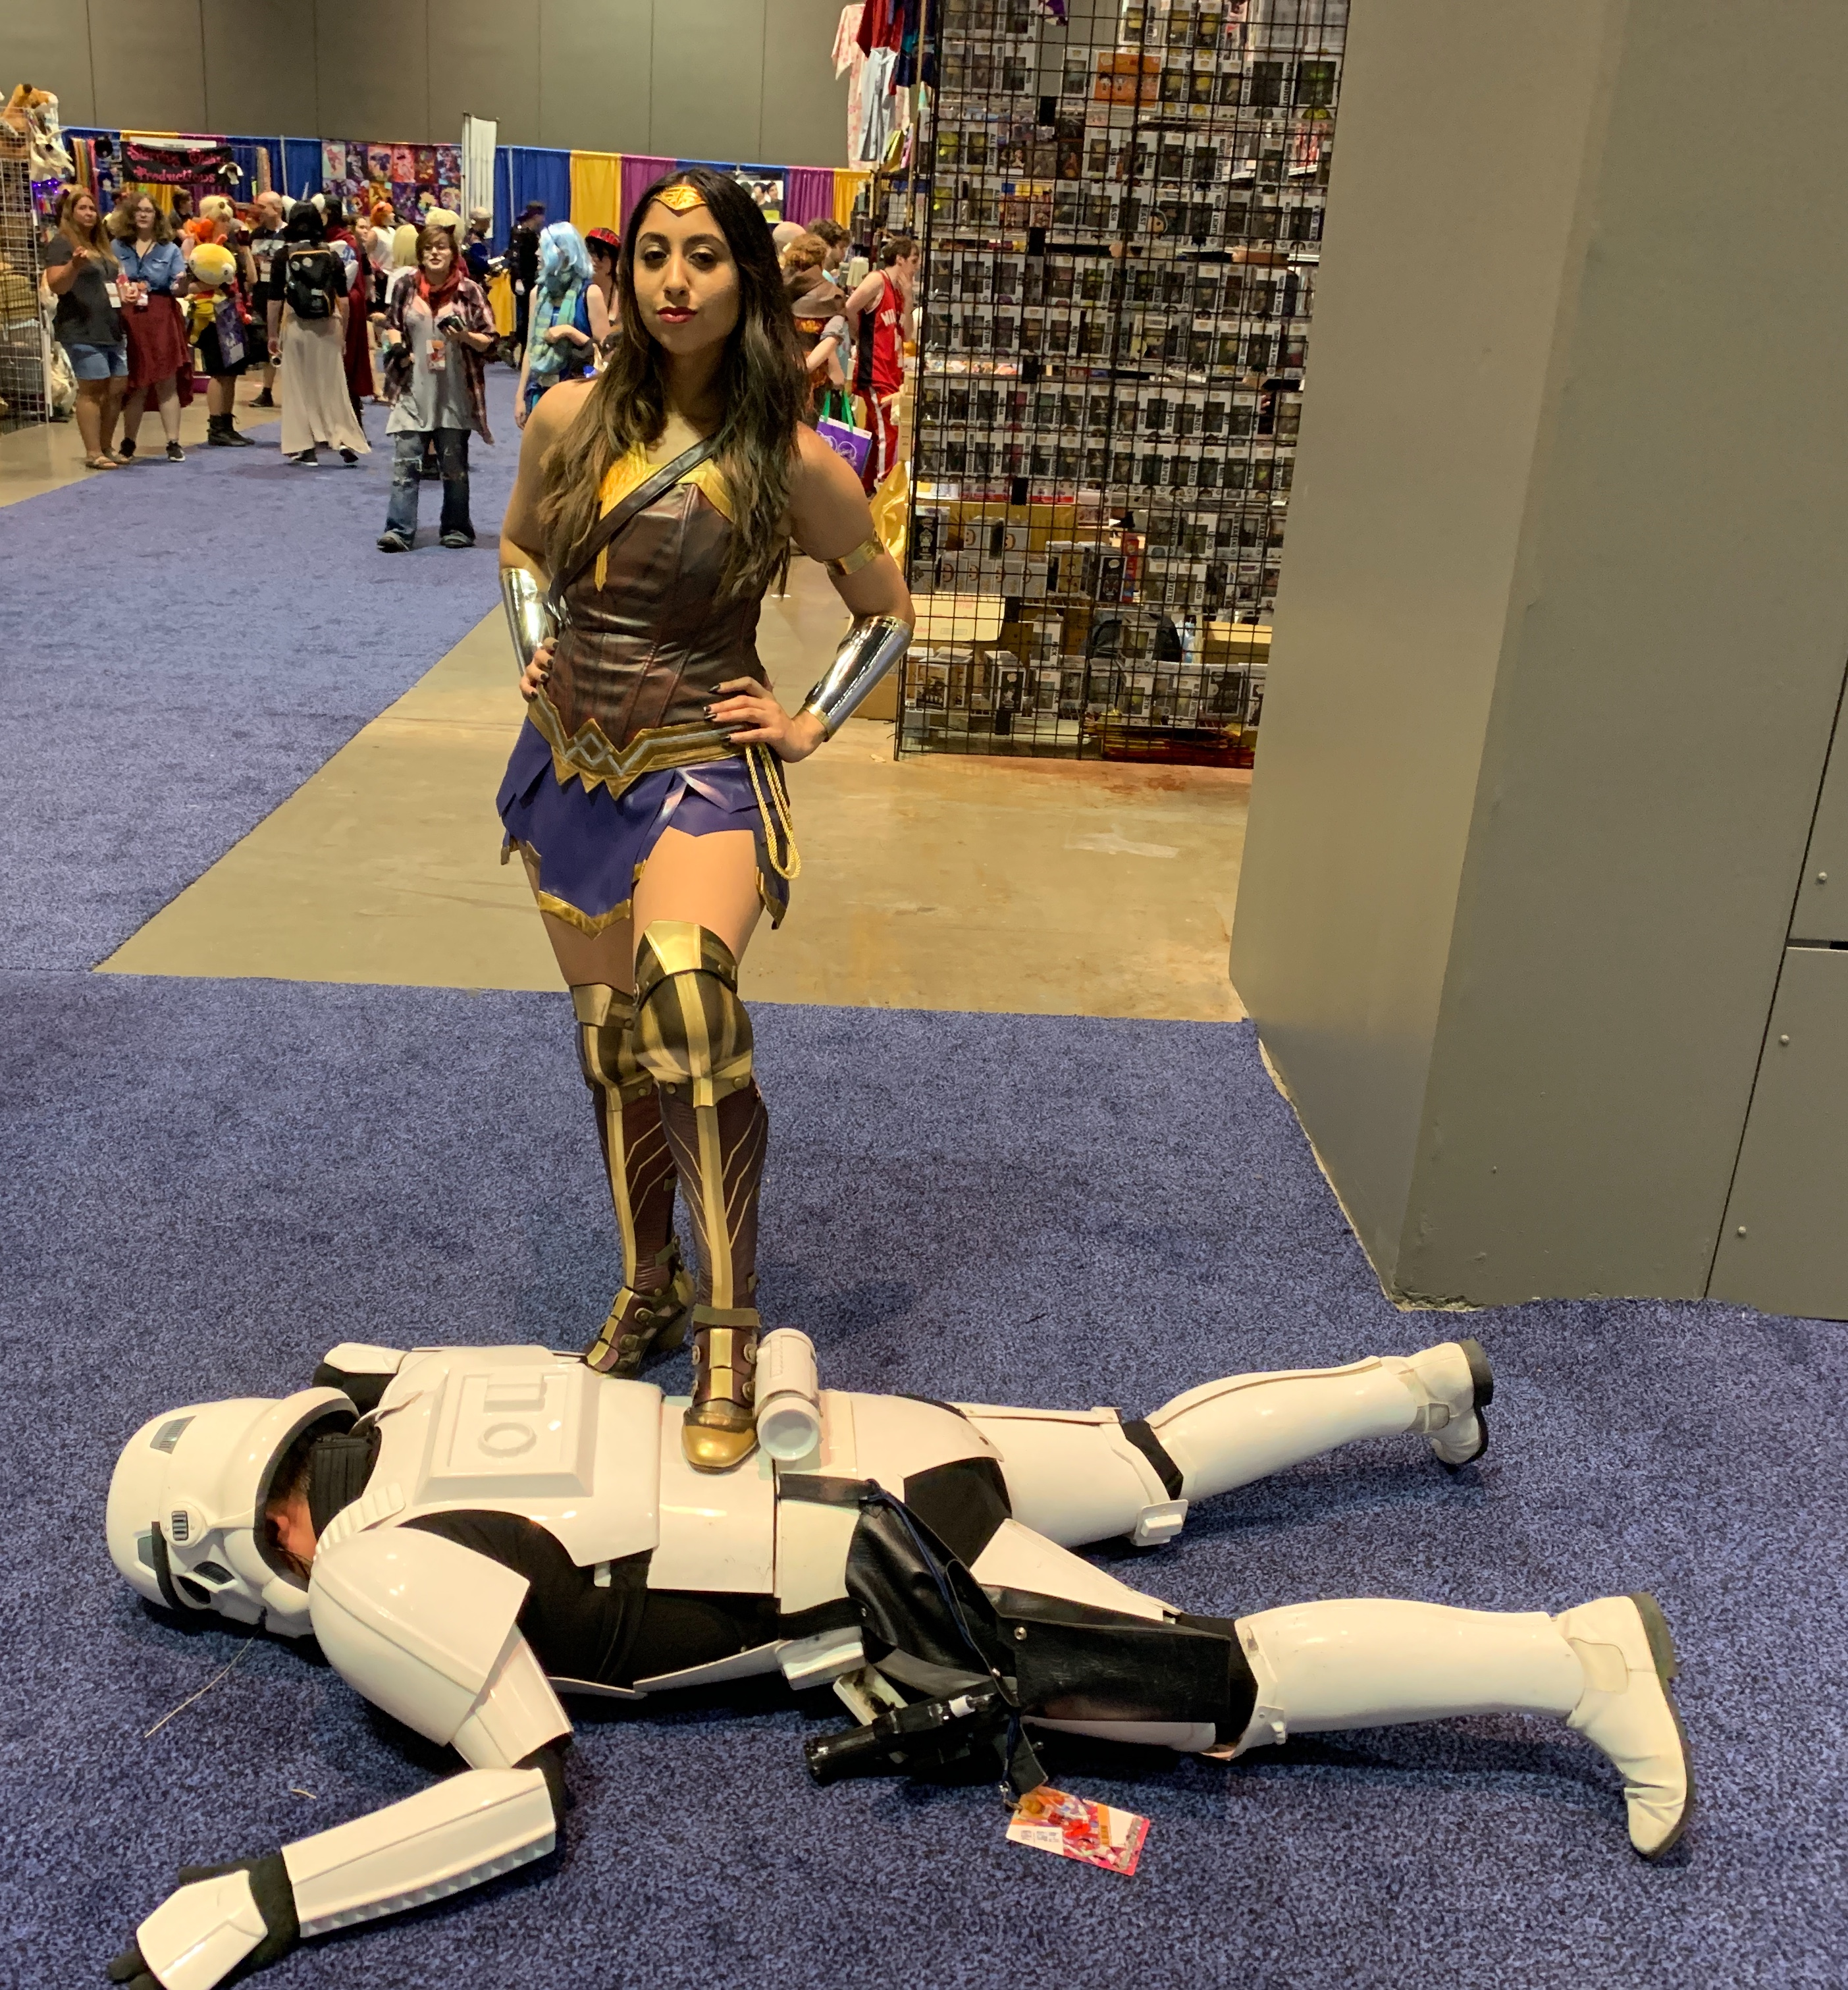 Wonder Woman taking out a Storm Trooper.